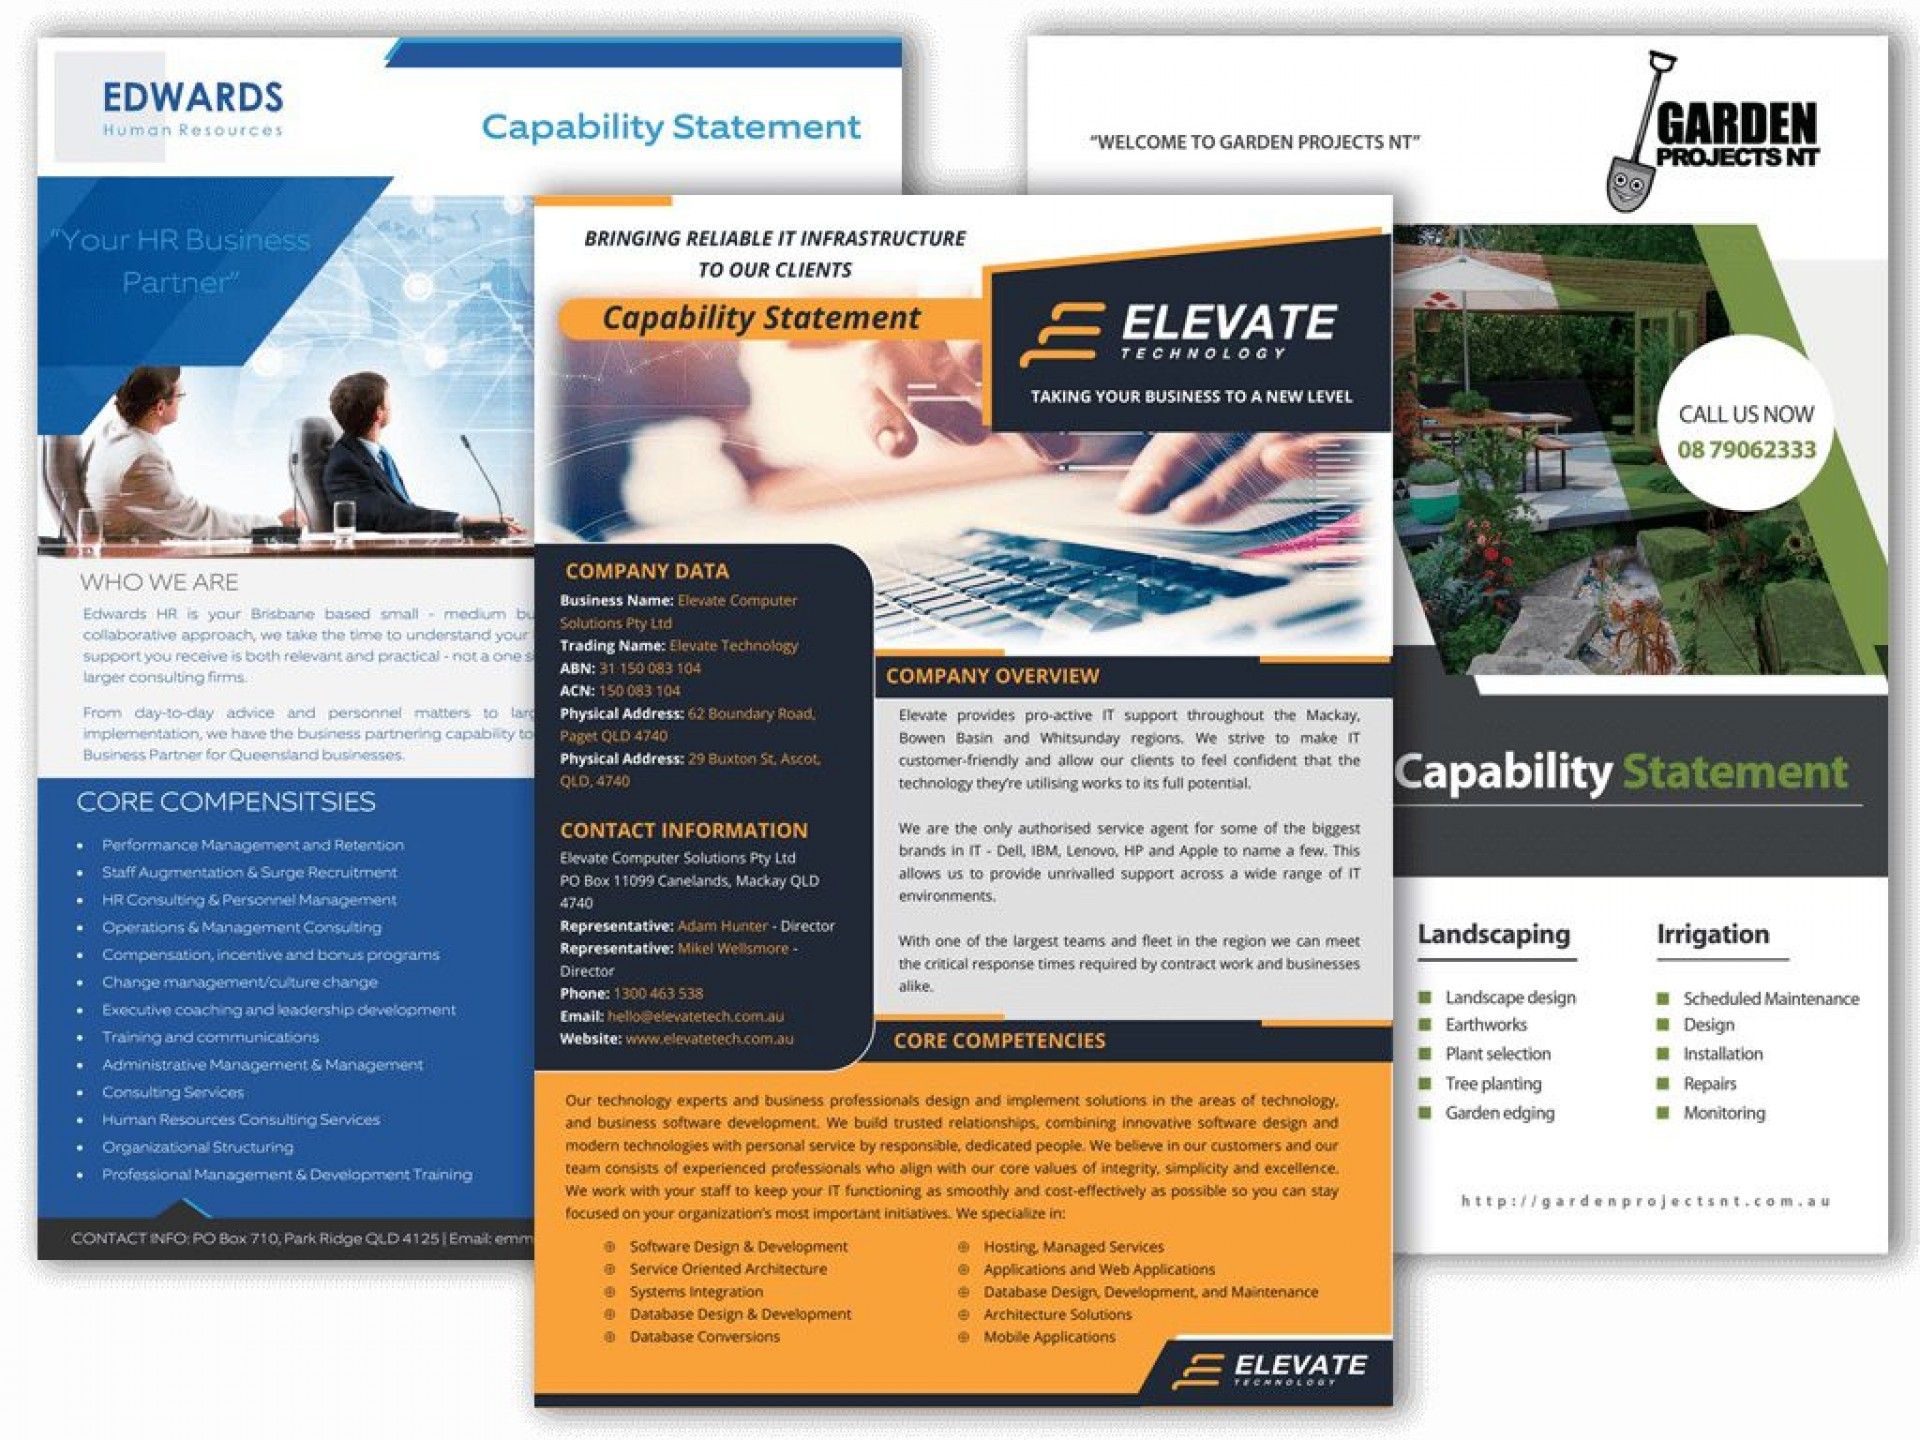 010 Surprising Capability Statement Template Free Concept  Word Editable Design1920